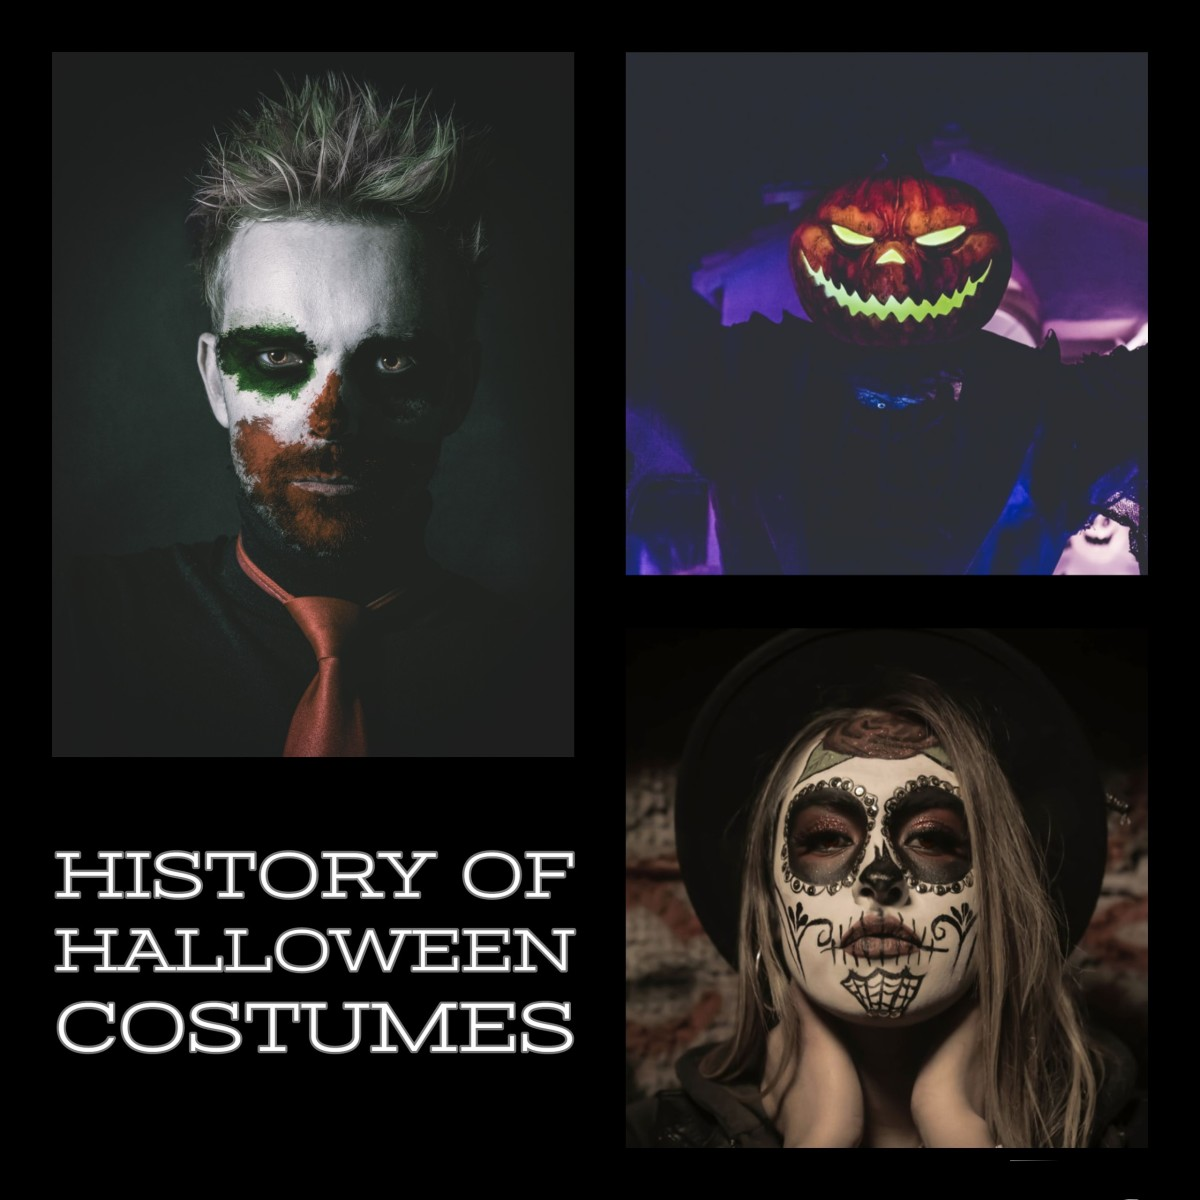 Costumes are an integral part of most modern Halloween celebrations, but how did the practice of dressing up on All Hallows' Eve originate?